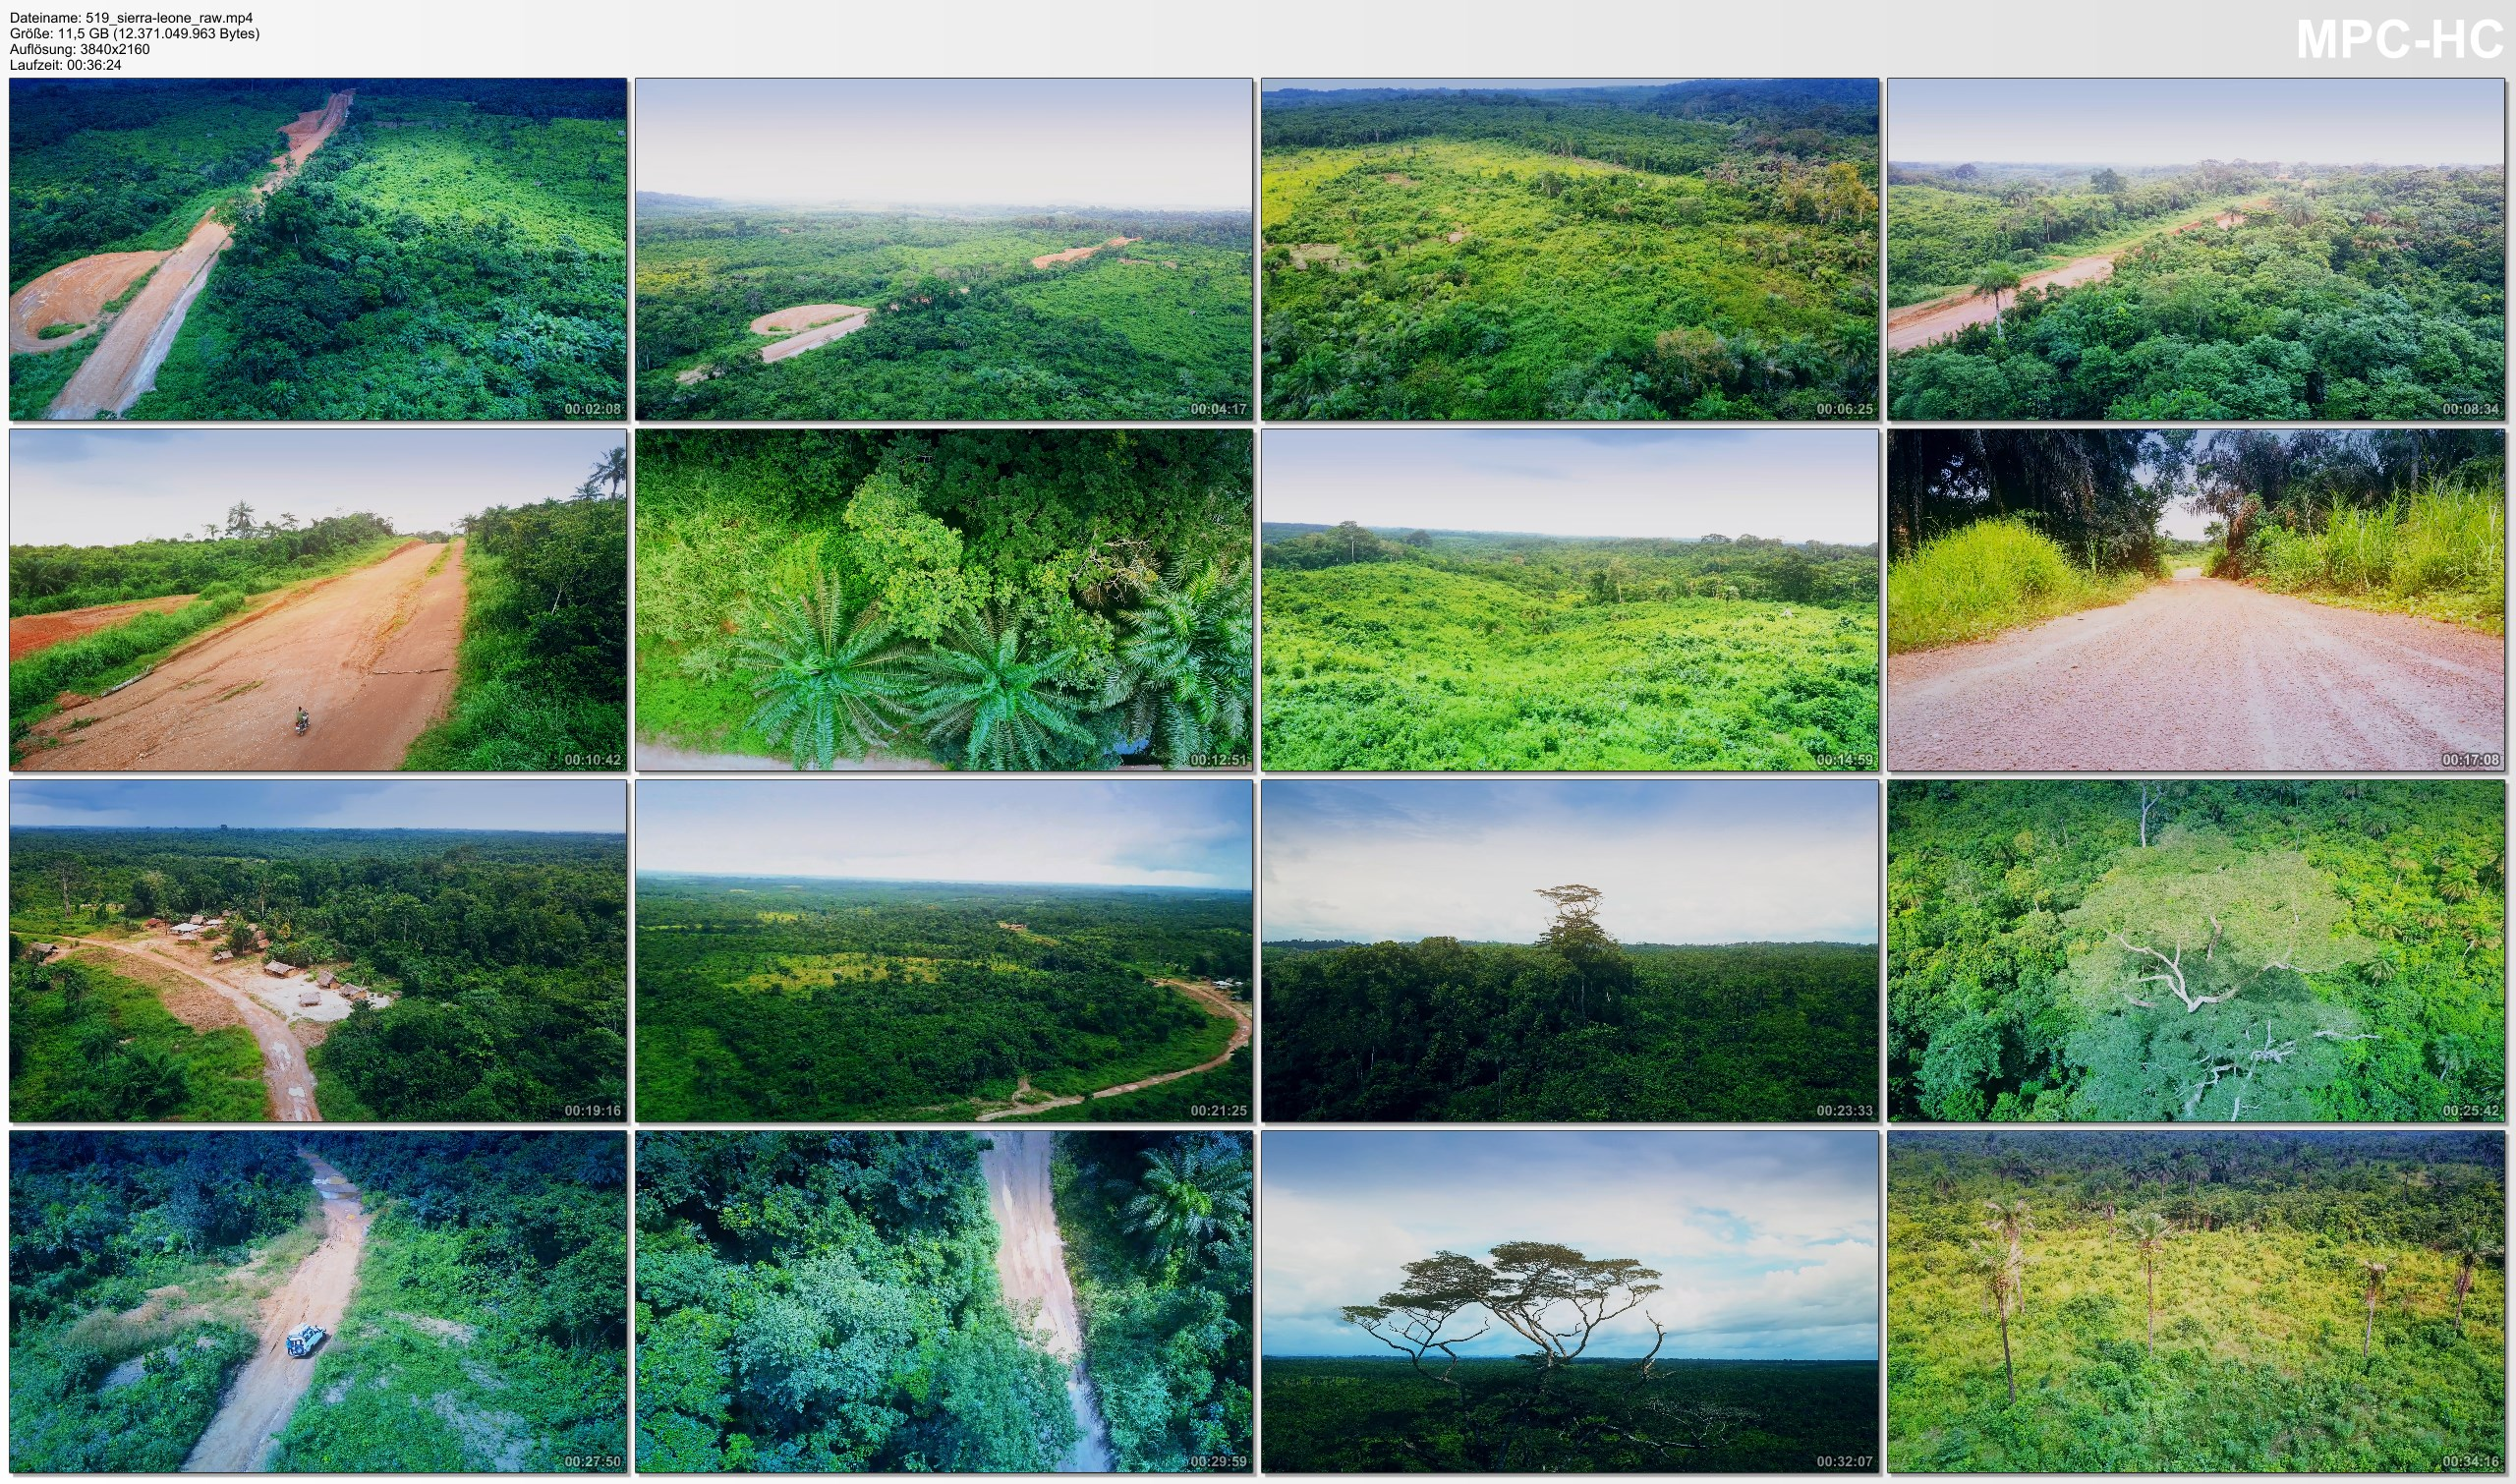 Drone Pictures from Video 【4K】Drone RAW Footage | This is SIERRA LEONE 2020 | West Africa | UltraHD Stock Video